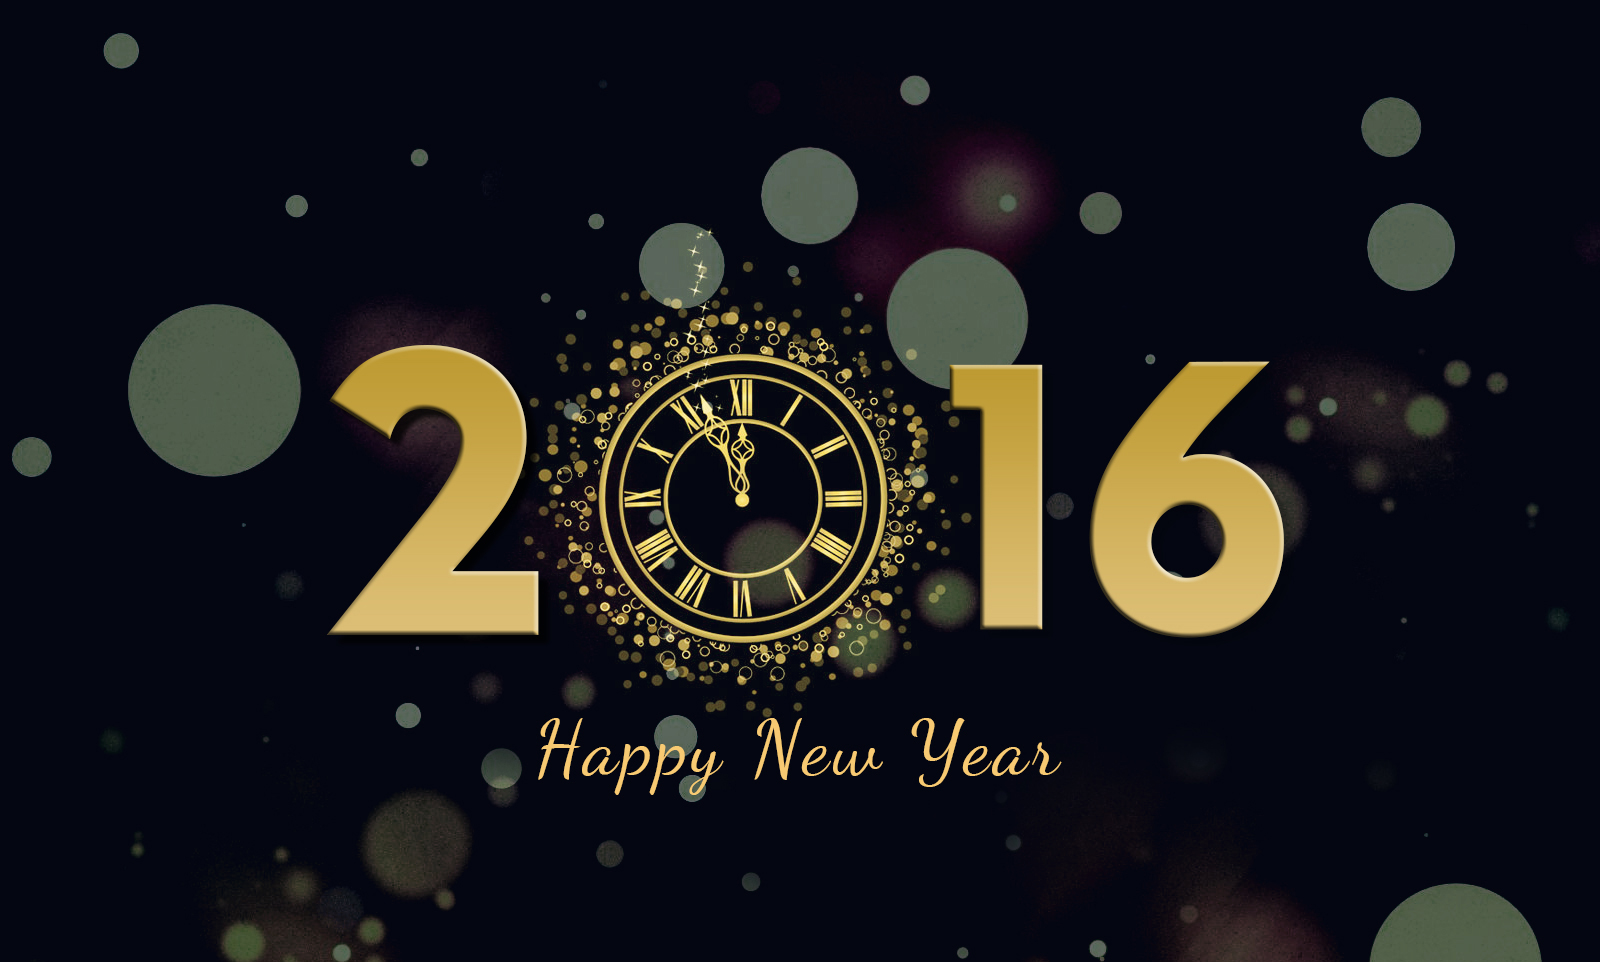 New Year 2016 Images HD Wallpapers Download For Desktop WhatsApp 1600x962